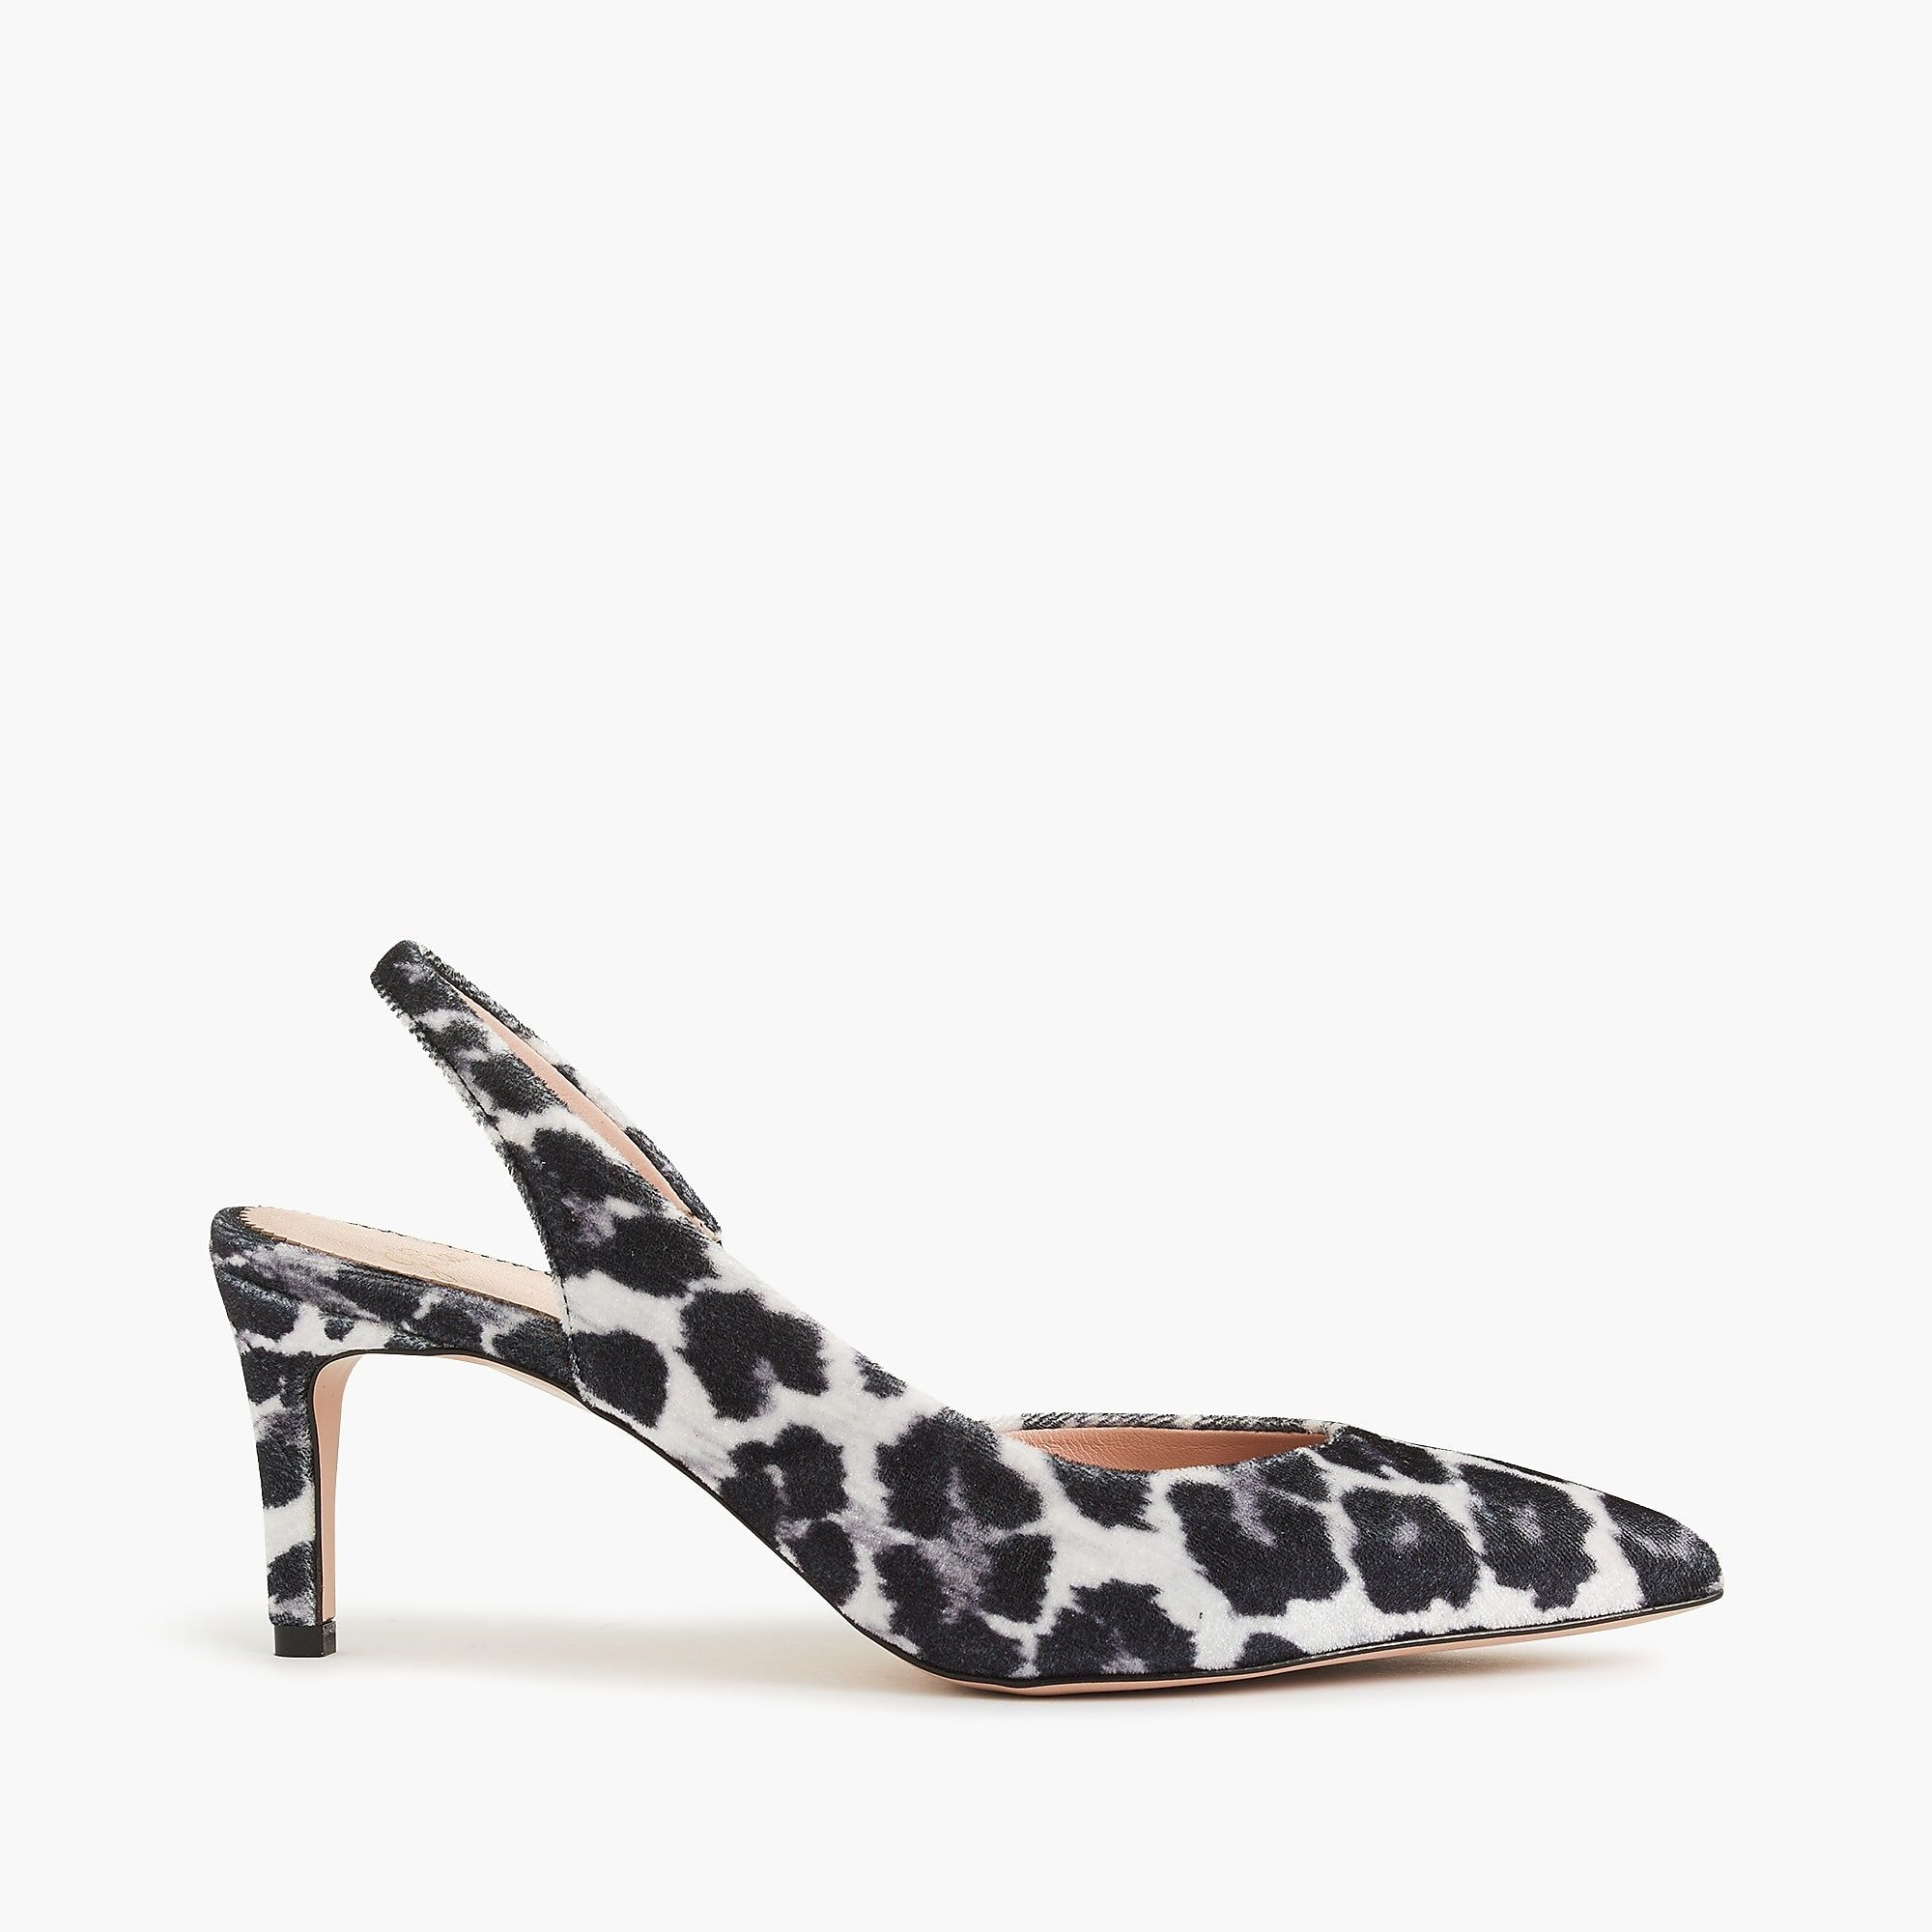 277a2abdf12 Colette slingback d Orsay pumps in leopard